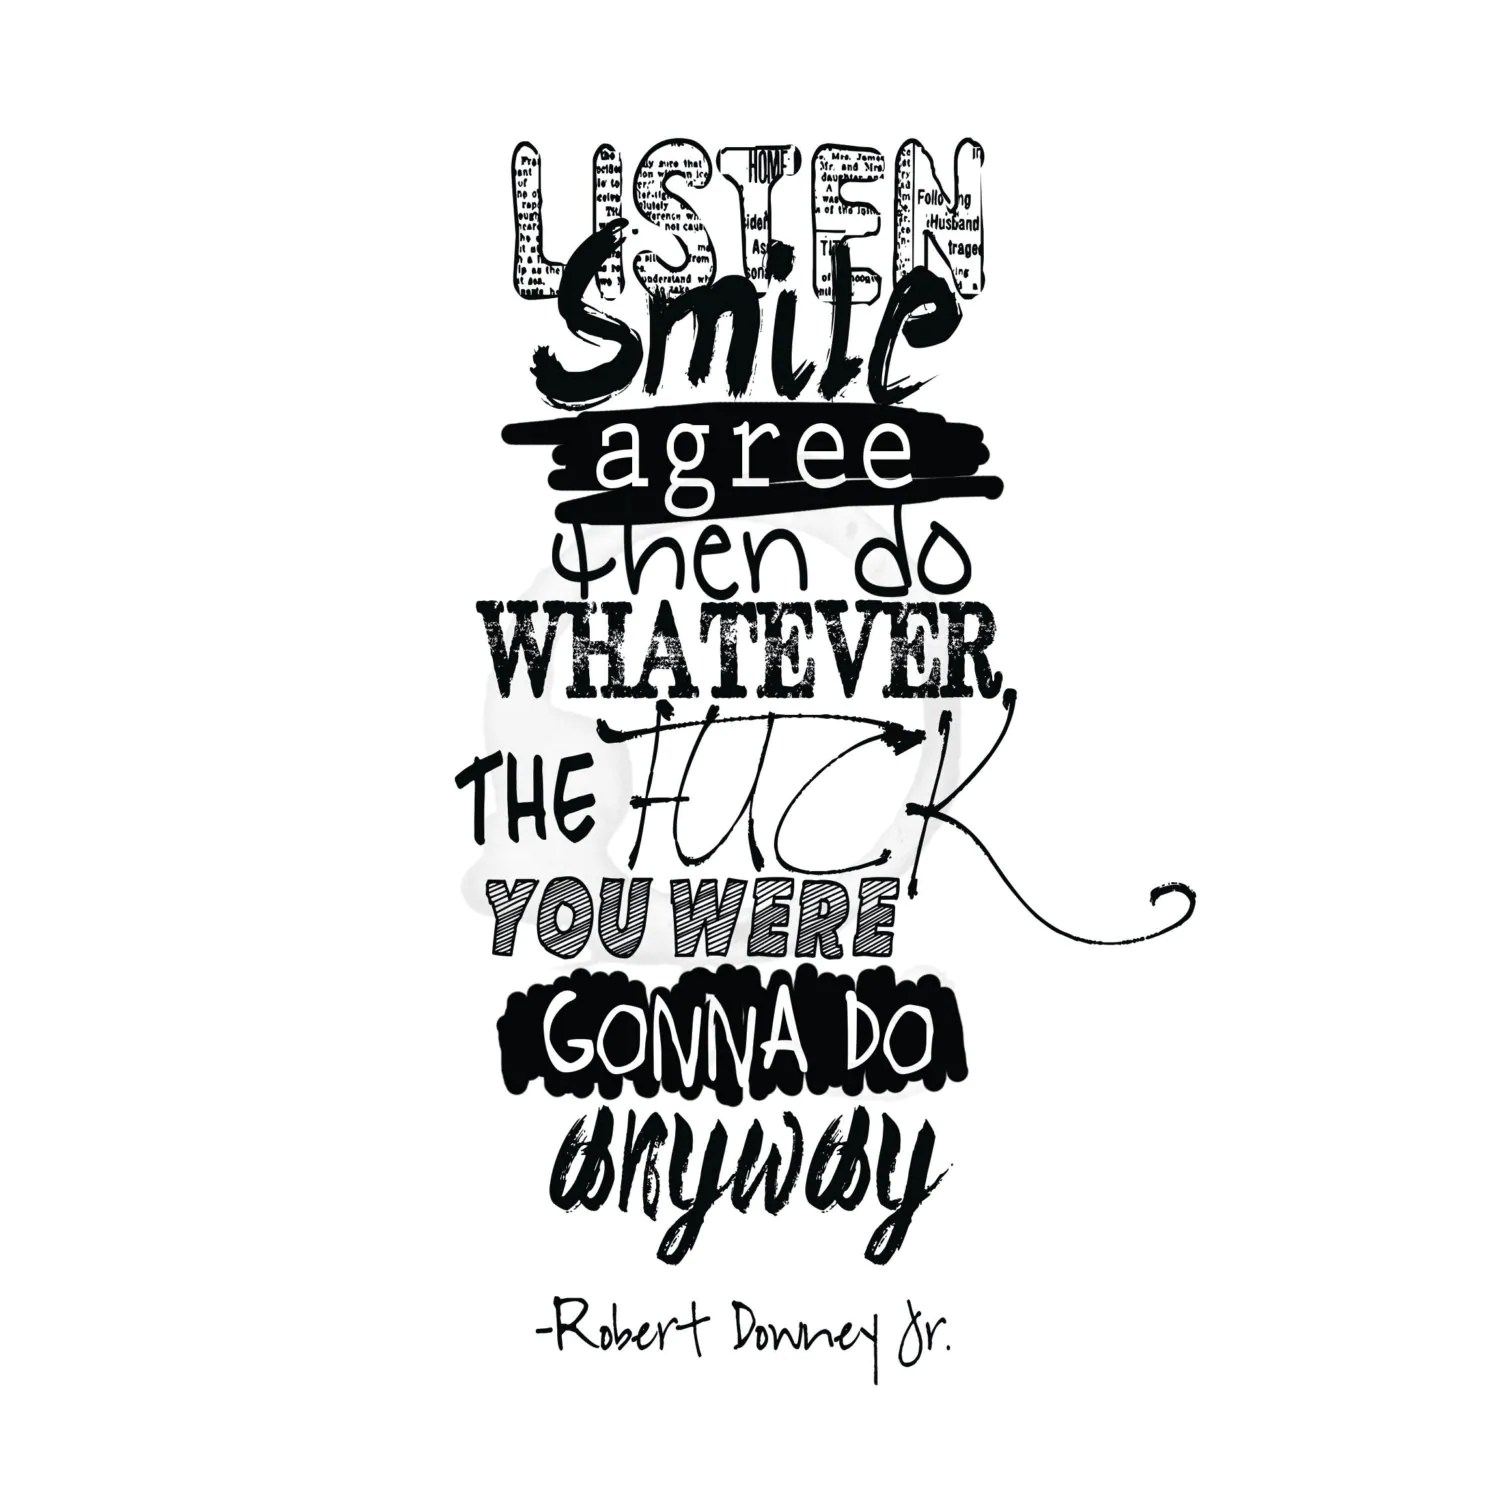 Robert Downey Jr Quote Digital Download By